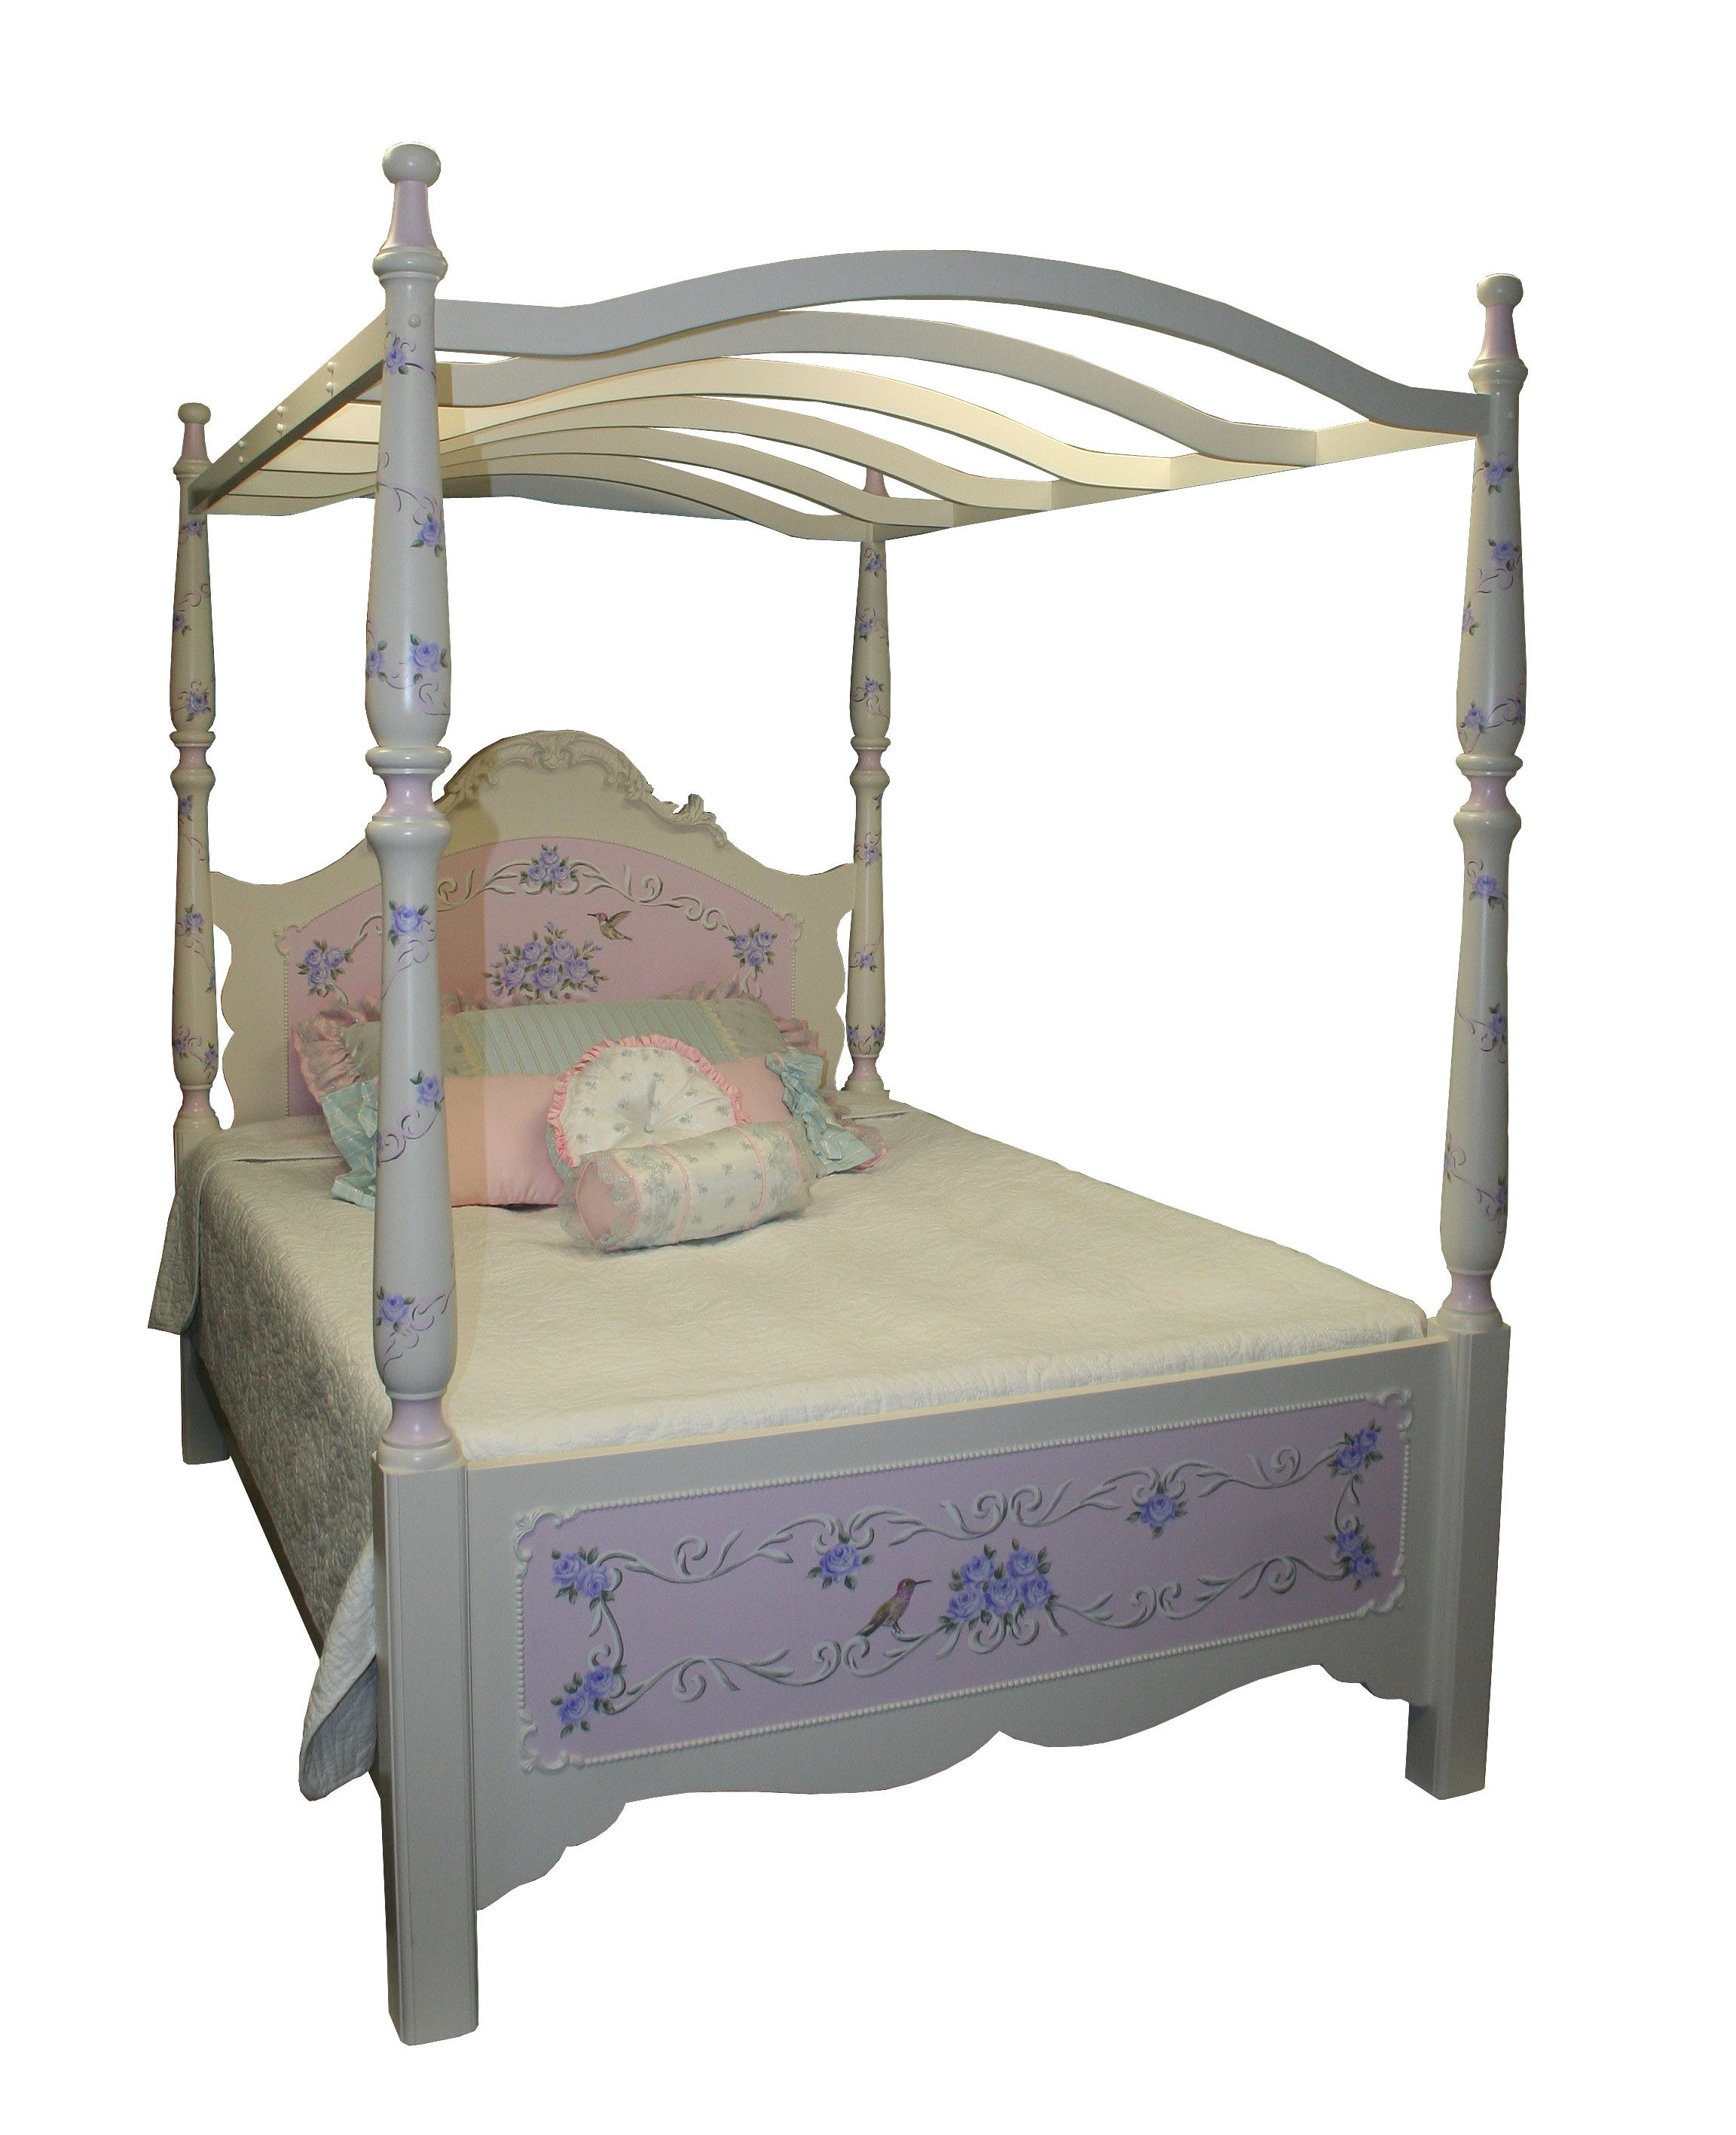 Hand painted simply elegant canopy bed childrens for Elegant canopy bedroom sets